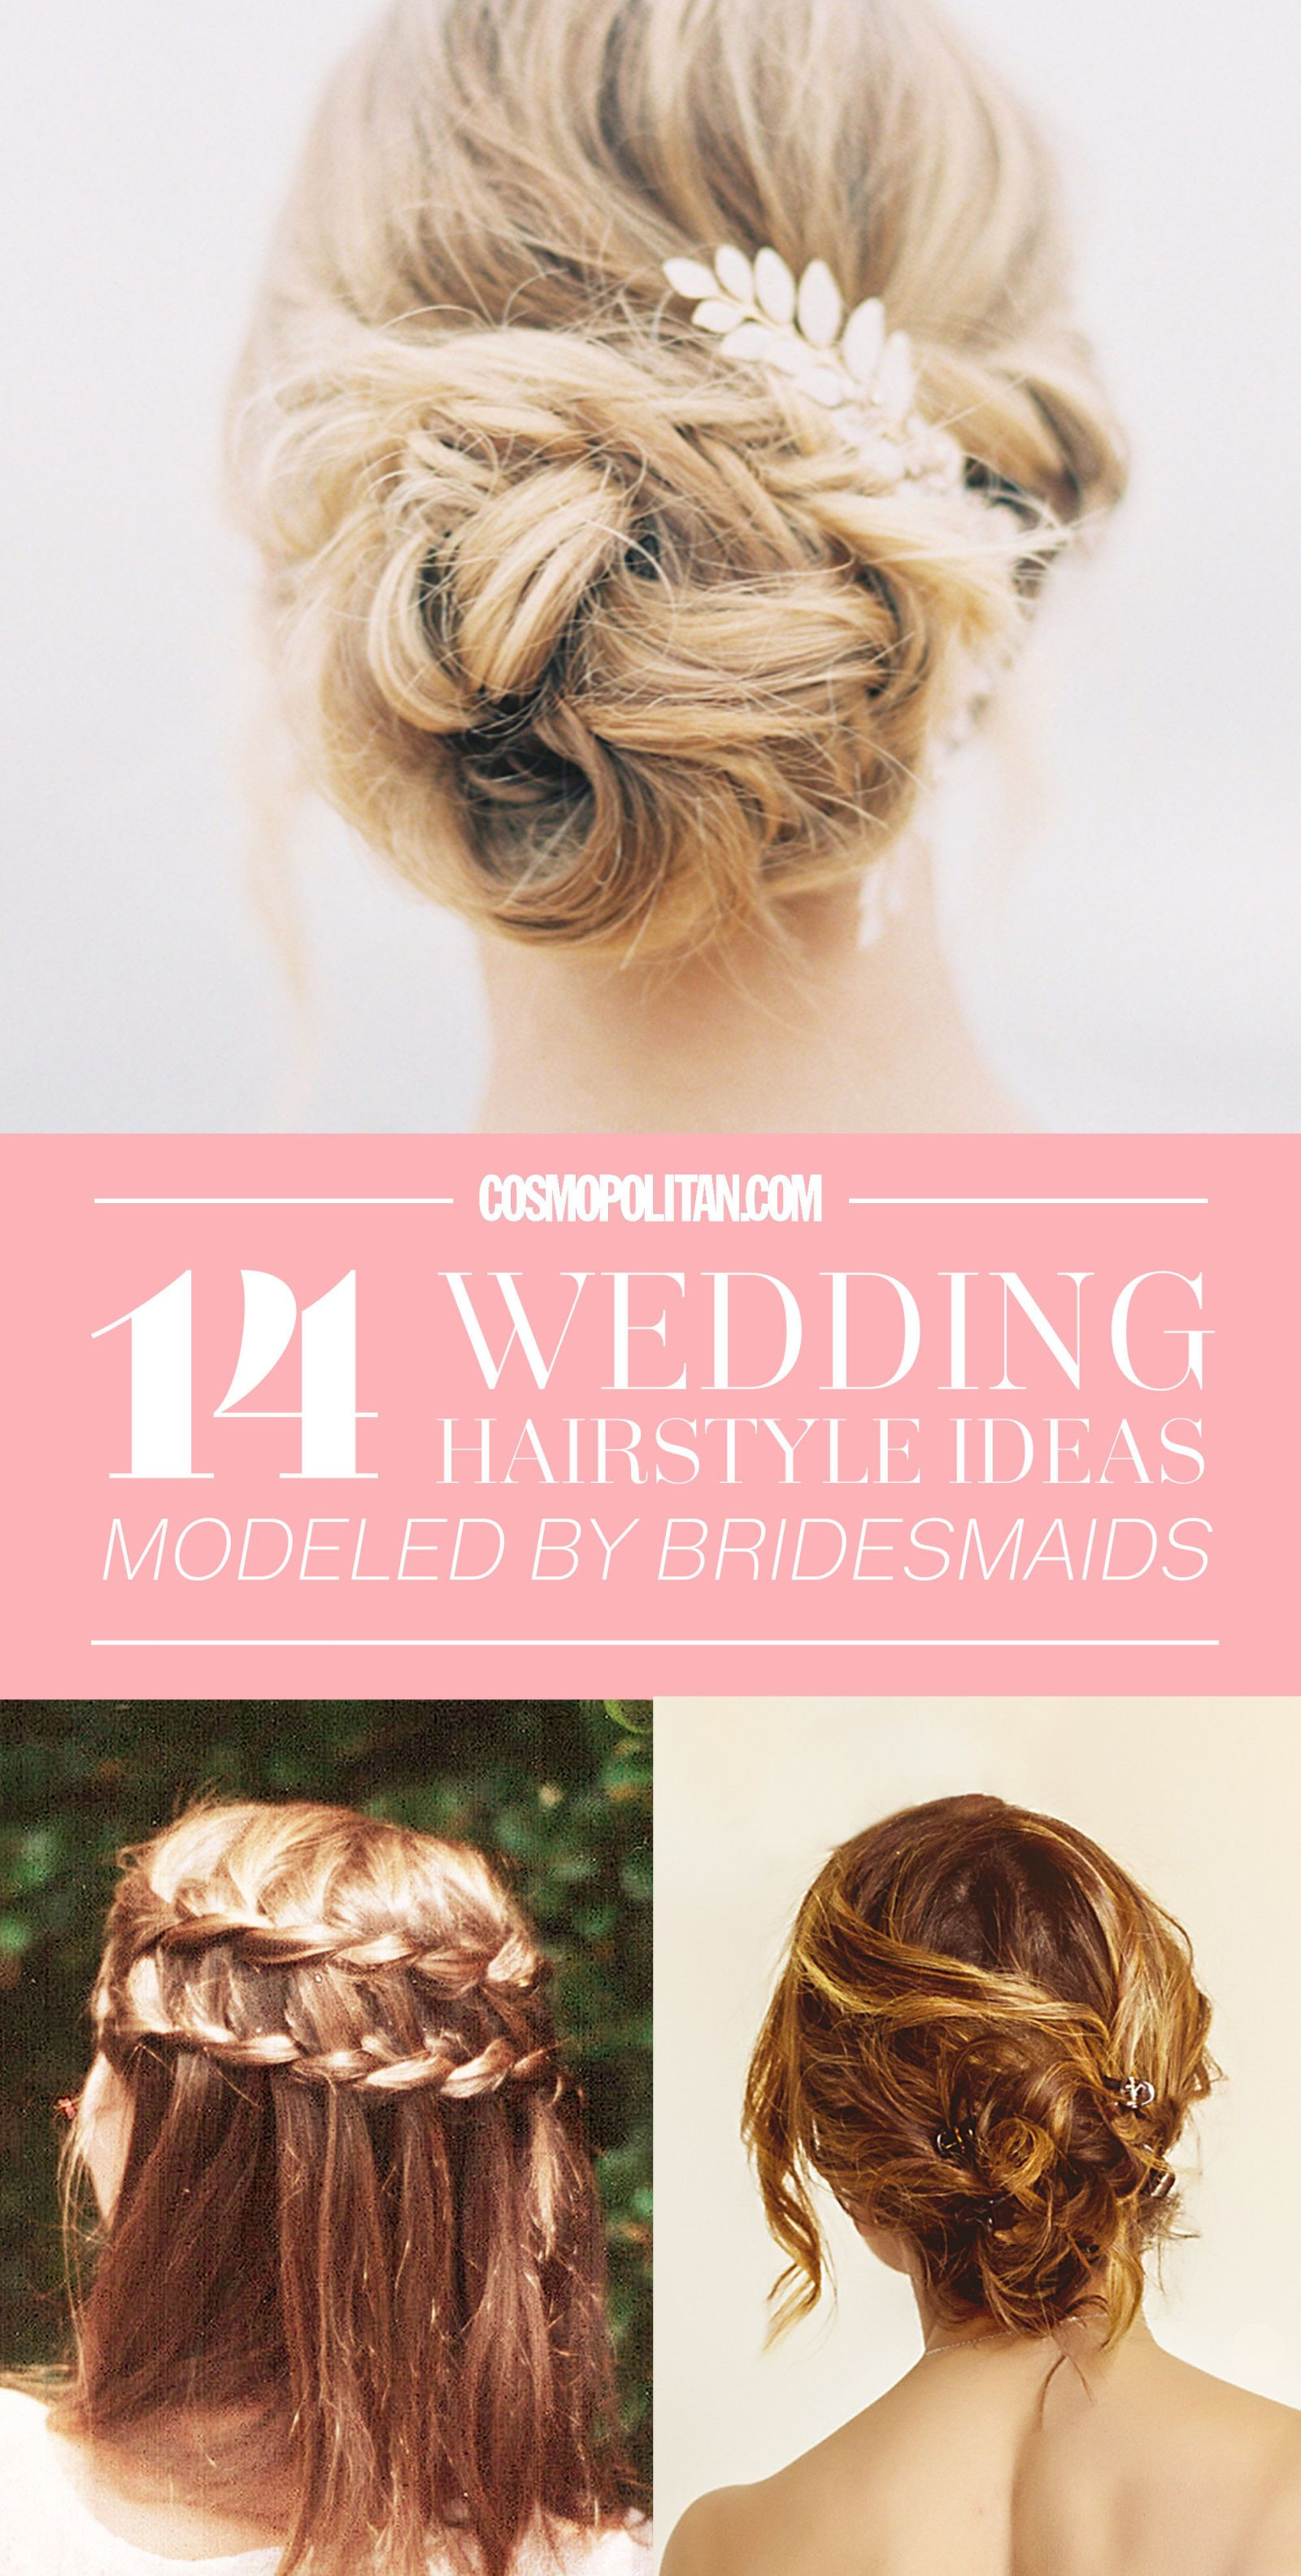 14 Wedding Hairstyle Ideas Modeled by Bridesmaids | Pinterest ...